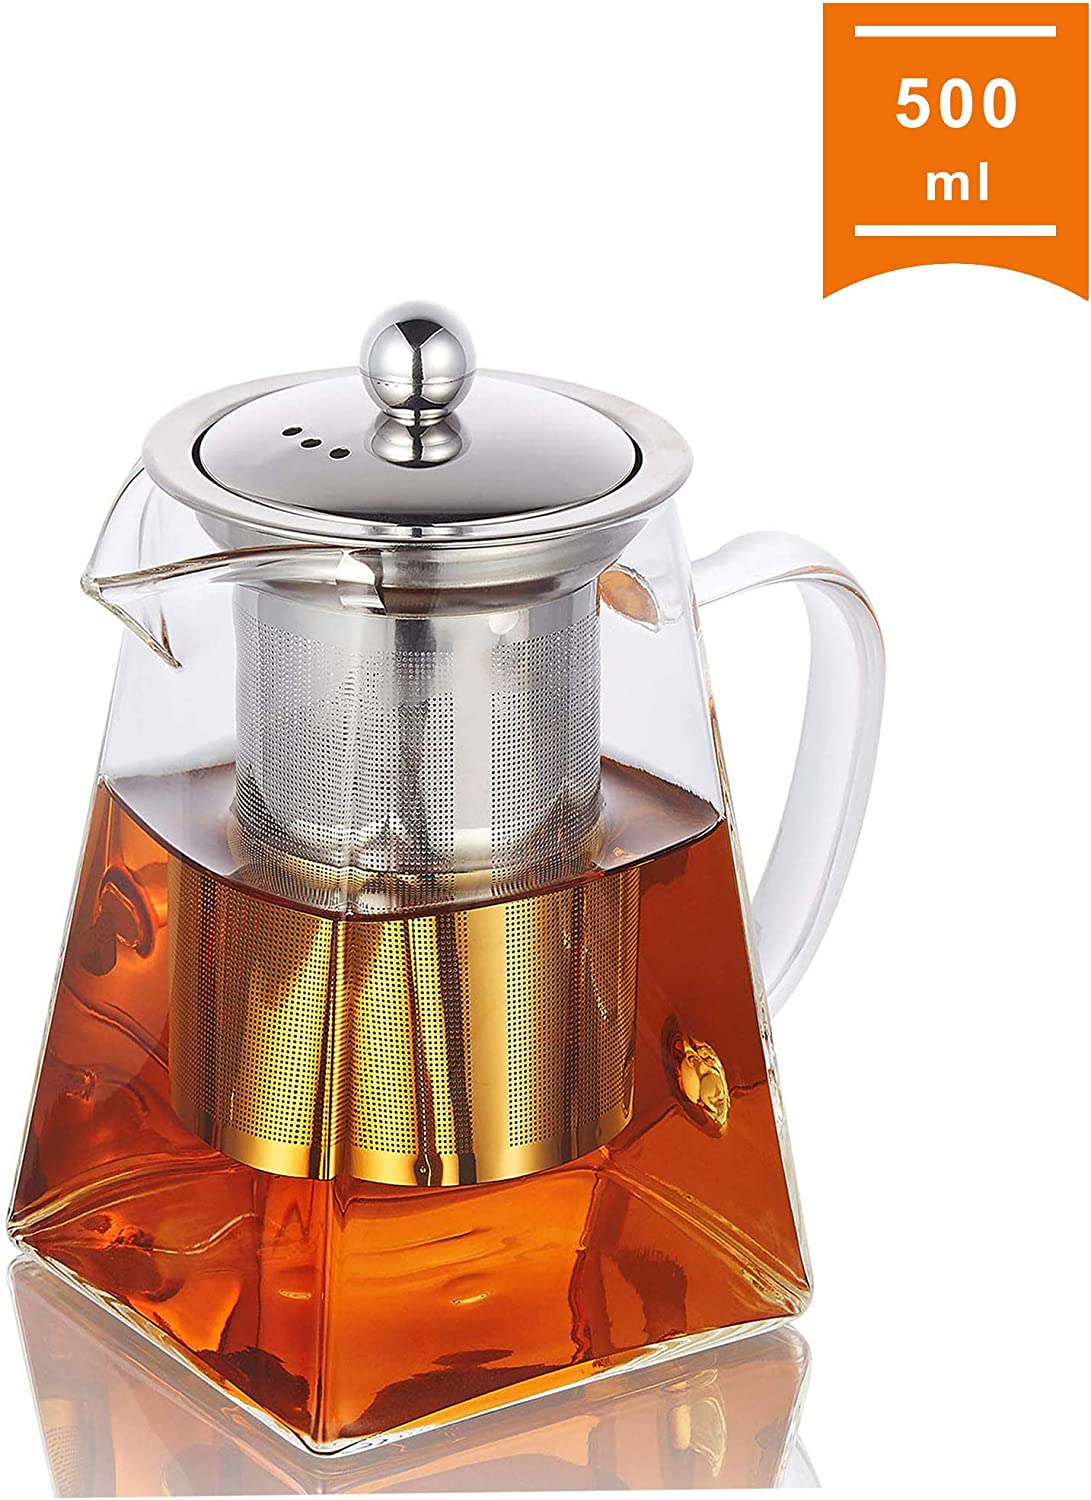 Glass Teapot with Infuser, 500 ml/16.9oz Clear High Borosilicate Glass Tea Pot with Removable Tea Strainers for Loose Leaf Tea, Heat Resistant Loose Leaf Teapot, Microwavable and Stovetop Safe